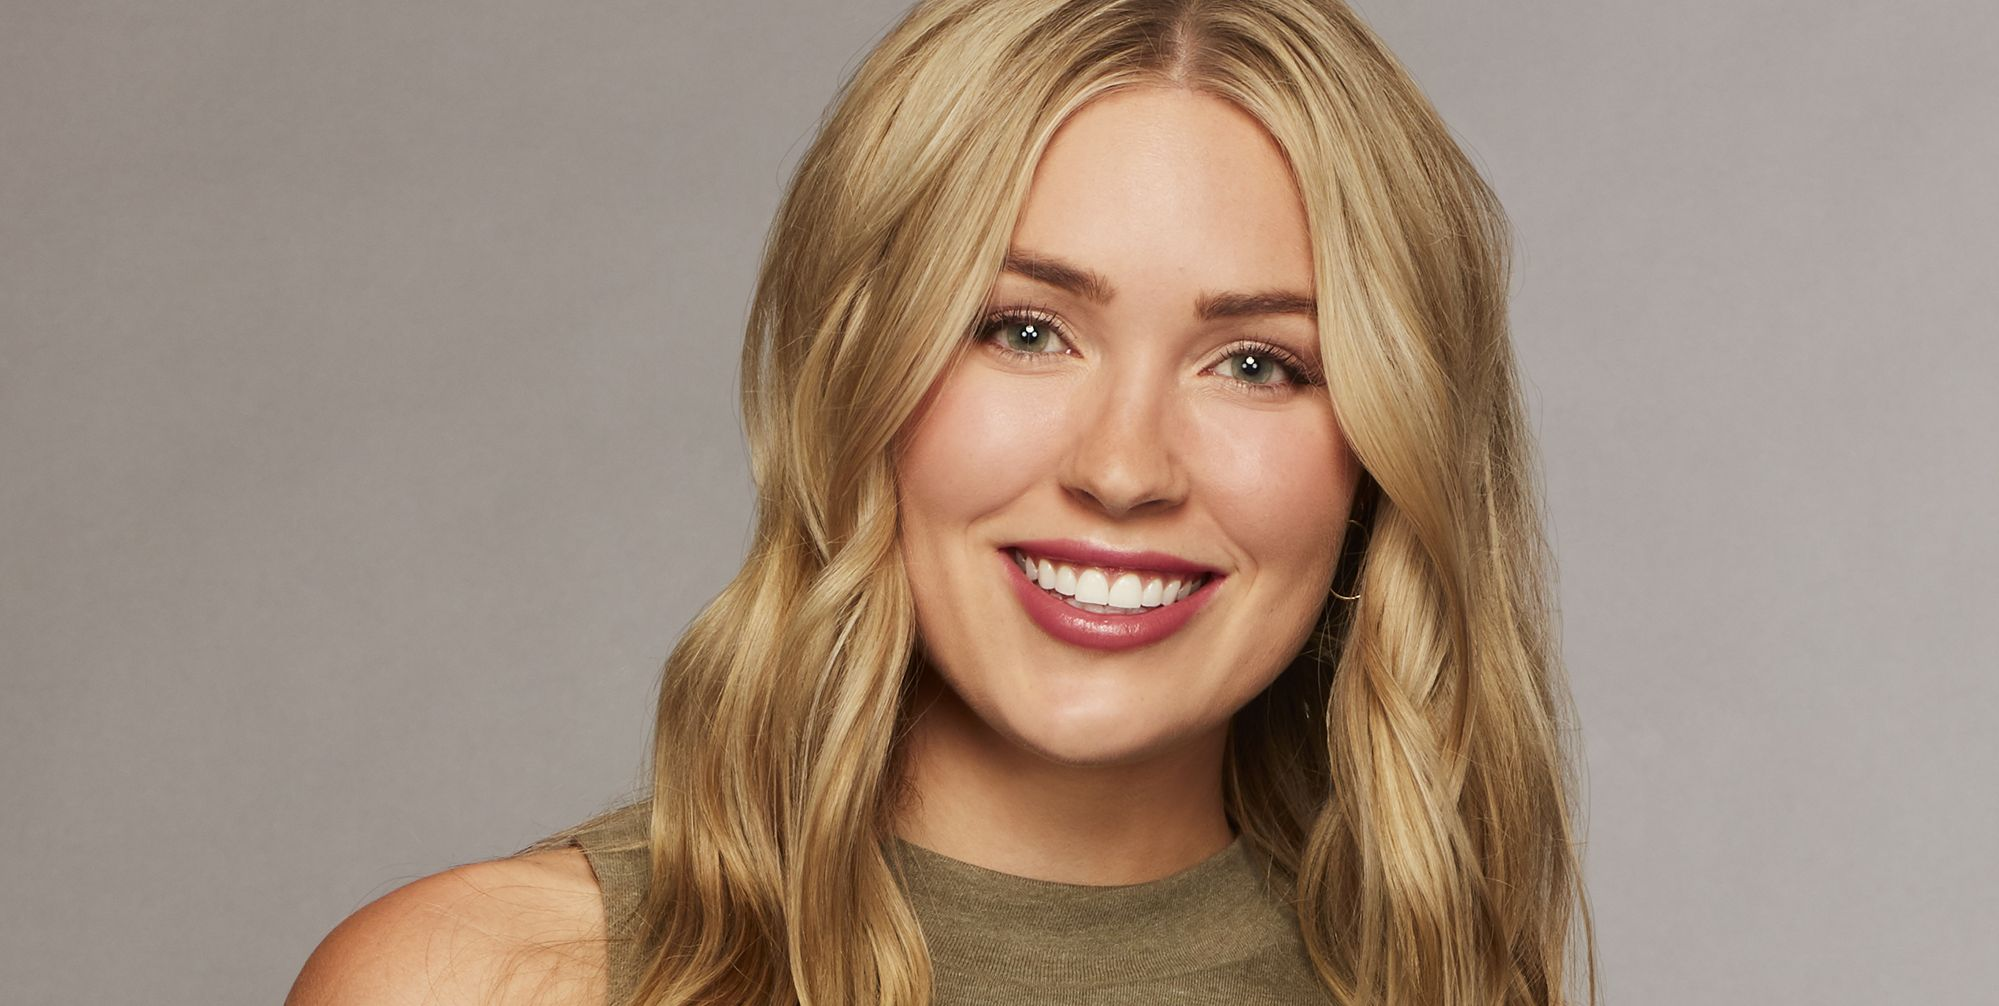 Who Is Cassie Randolph, The Bachelor Contestant Who Stole